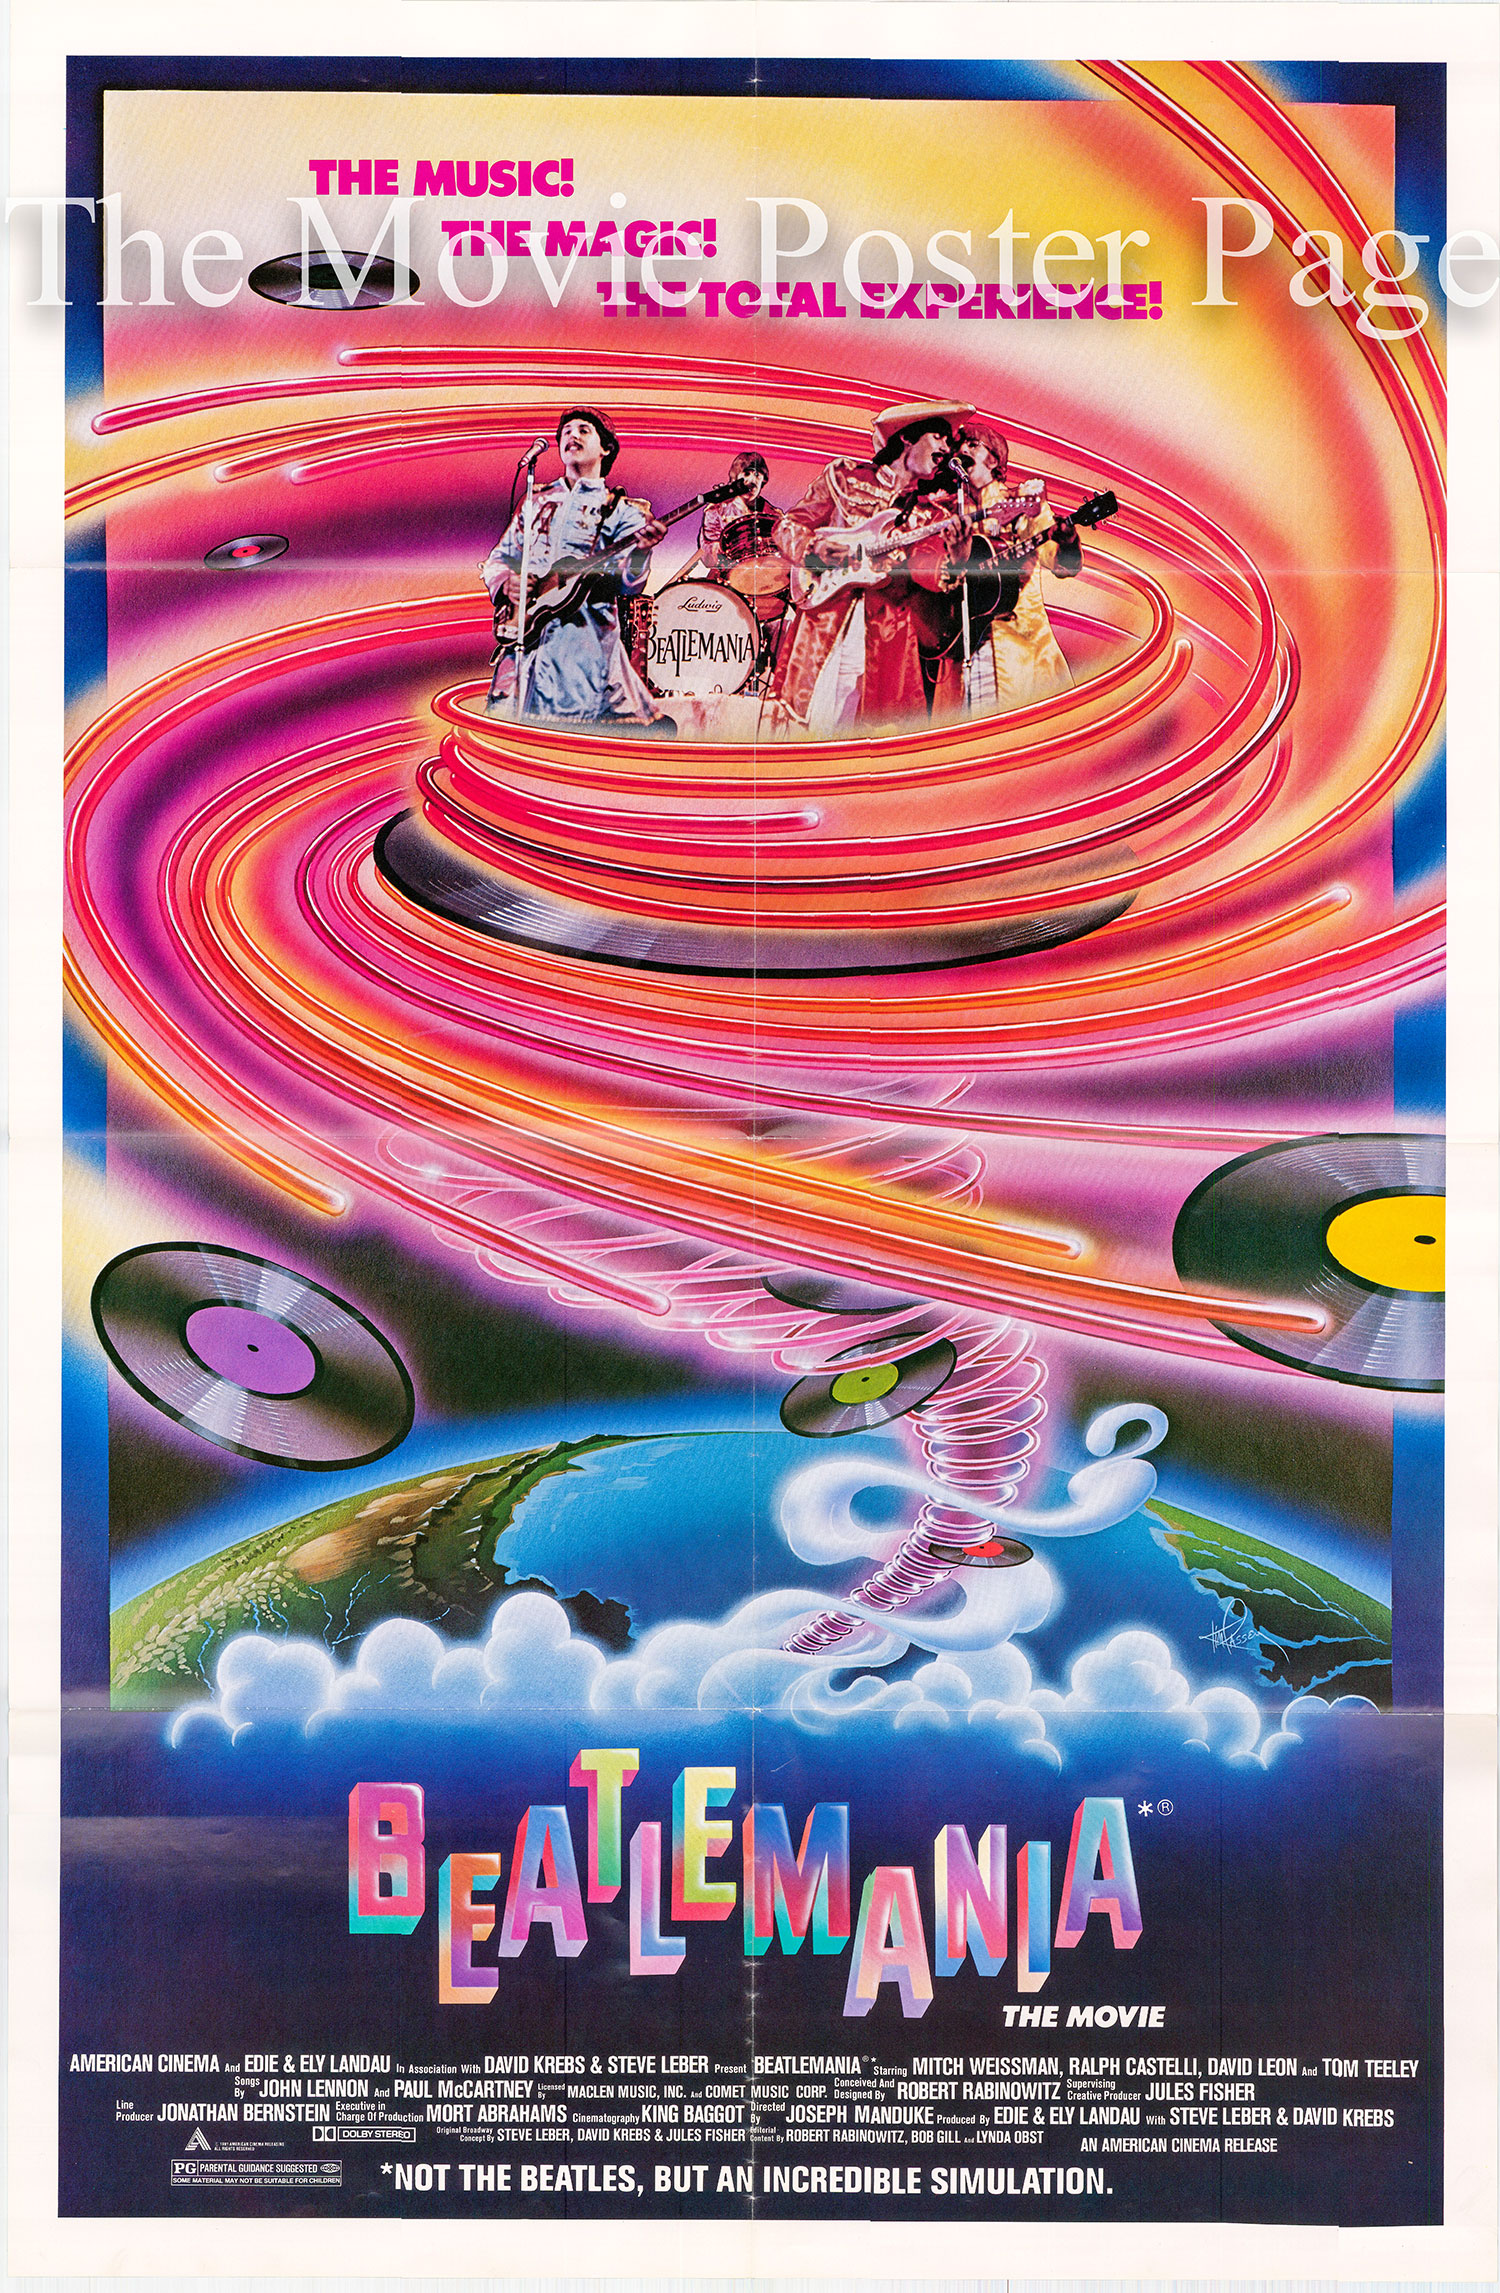 Pictured is a US one-sheet poster for the 1981 Joseph Maanduke film Beatlemania starring David Leon.